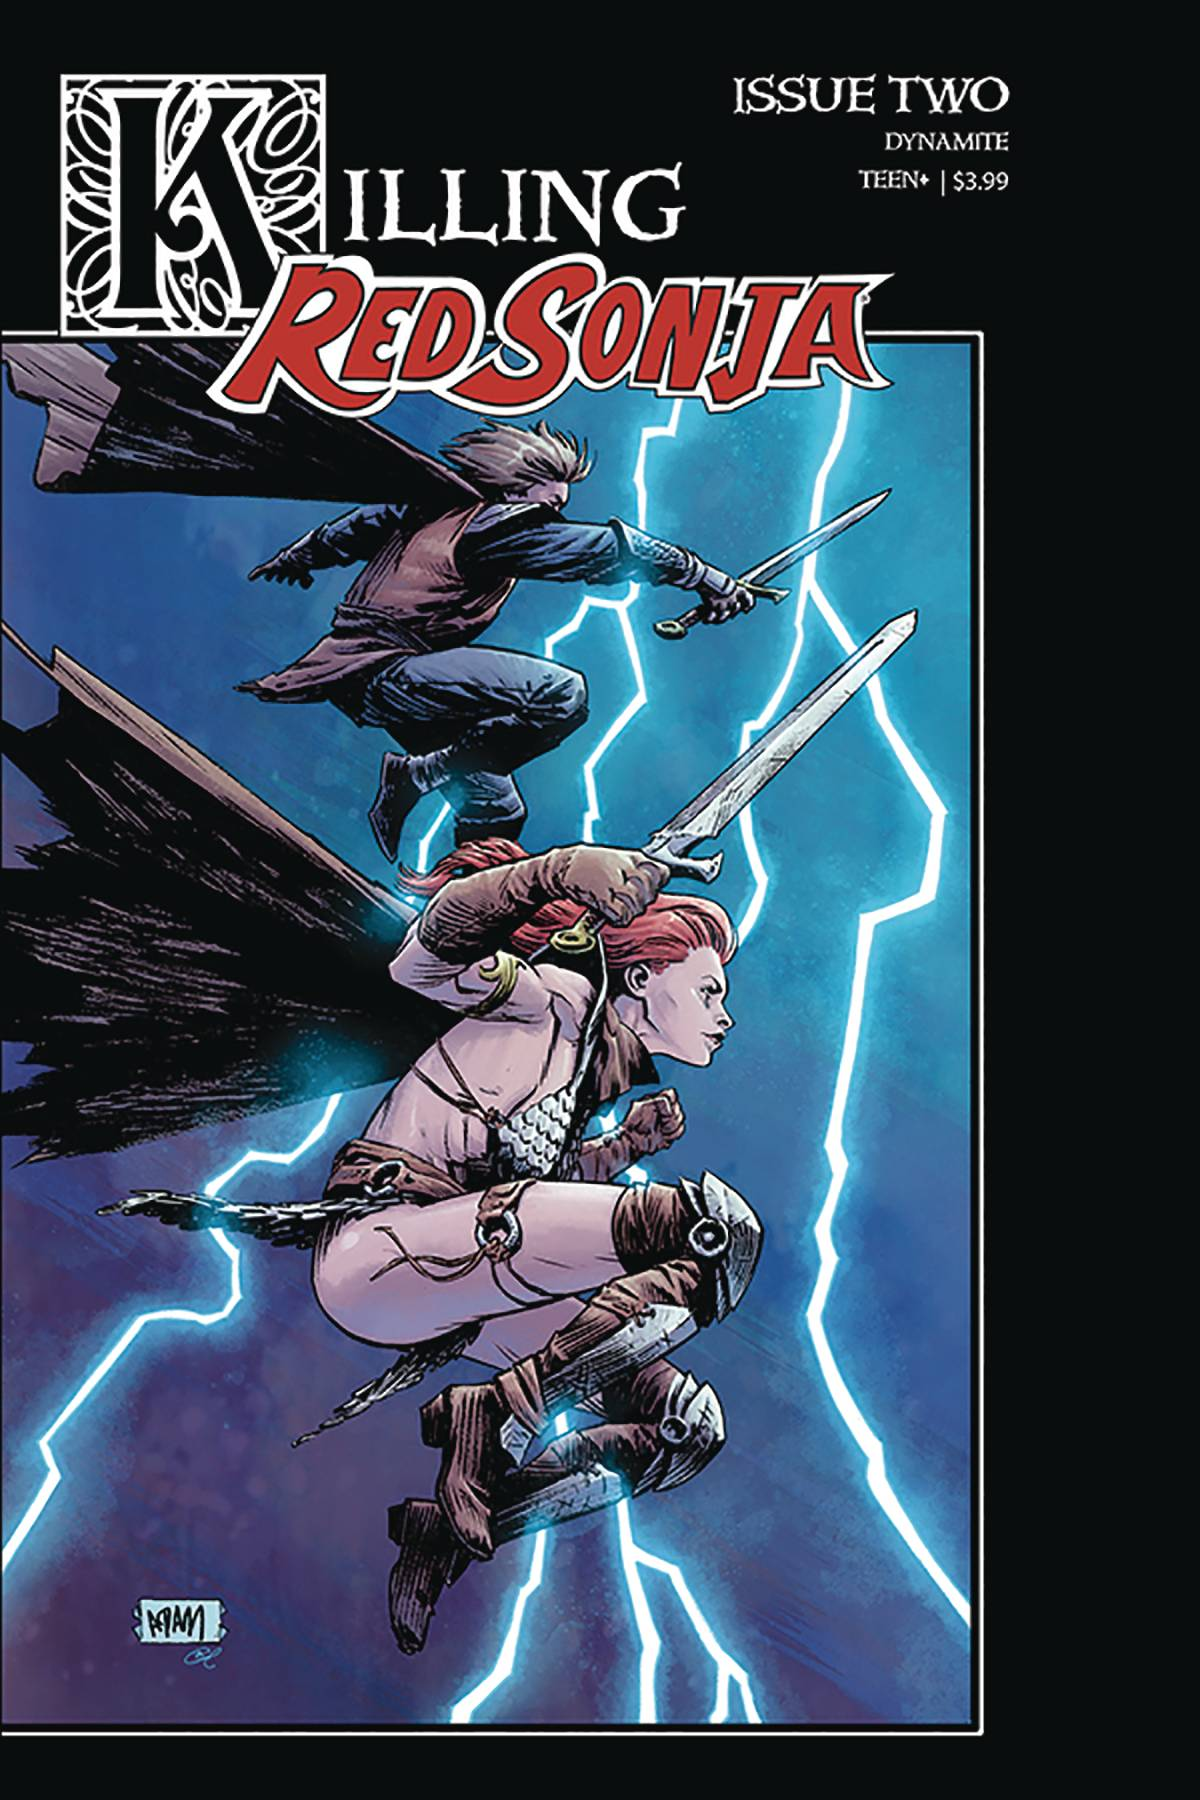 KILLING RED SONJA #2 CVR B GORHAM HOMAGE